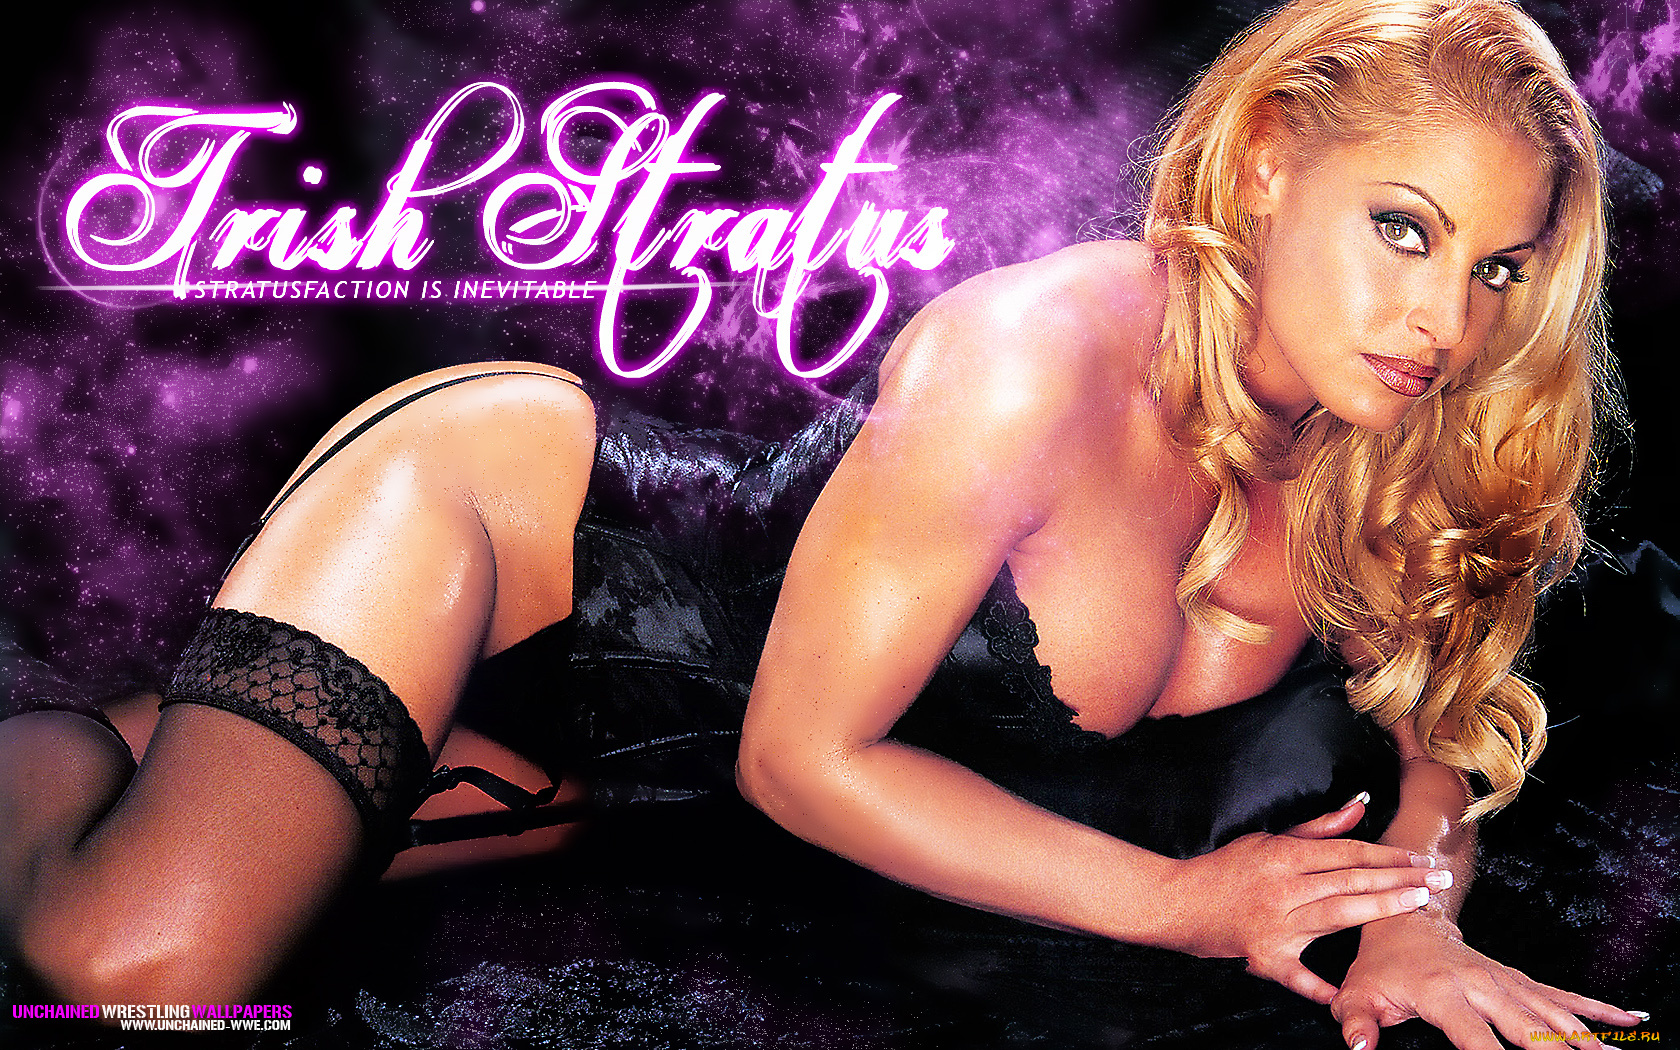 trish-stratus-pussy-licked-anal-bisex-gay